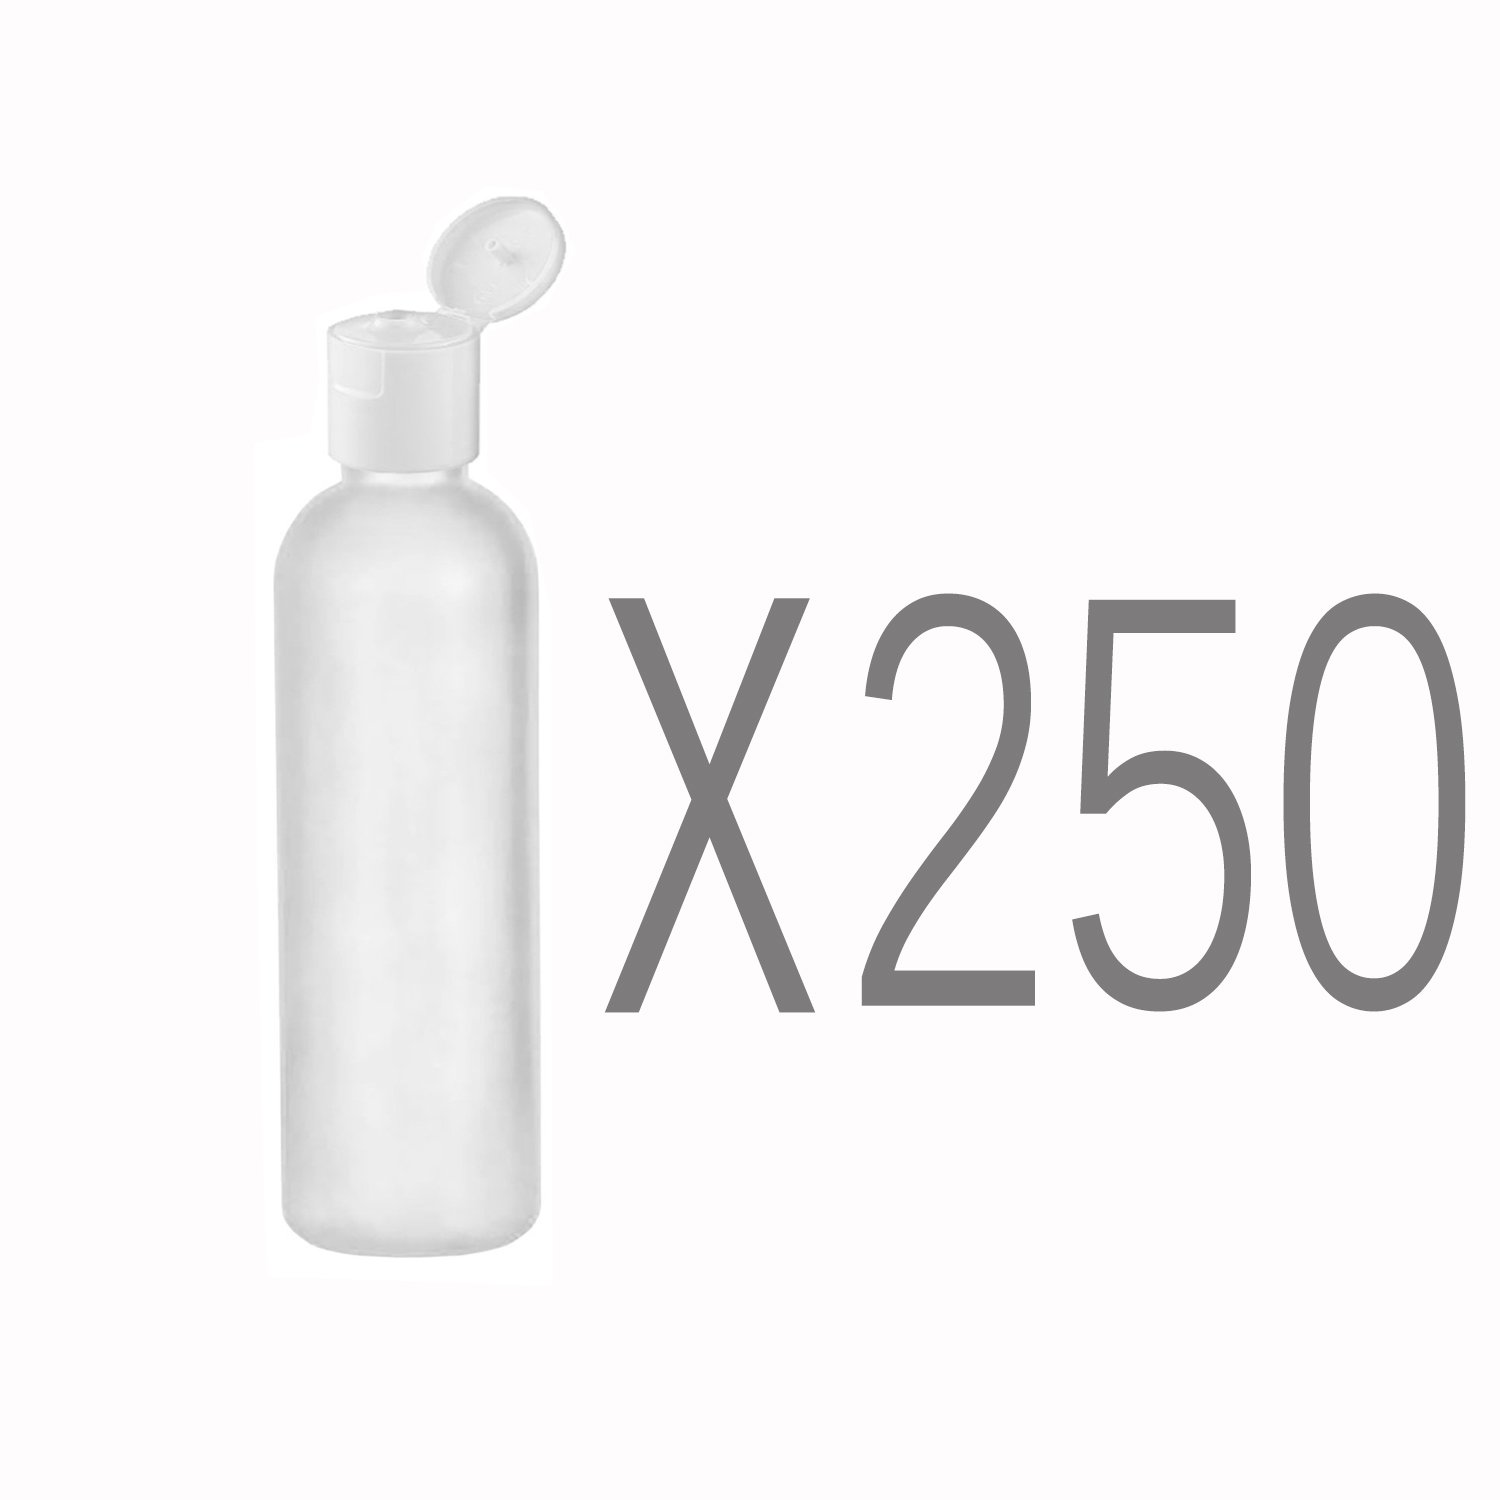 MoYo Natural Labs 2 oz Travel Bottles, TSA Approved Empty Travel Containers with Flip Caps, BPA Free HDPE Plastic Squeezable Toiletry/Cosmetic Bottles (Pack of 250, Translucent White)